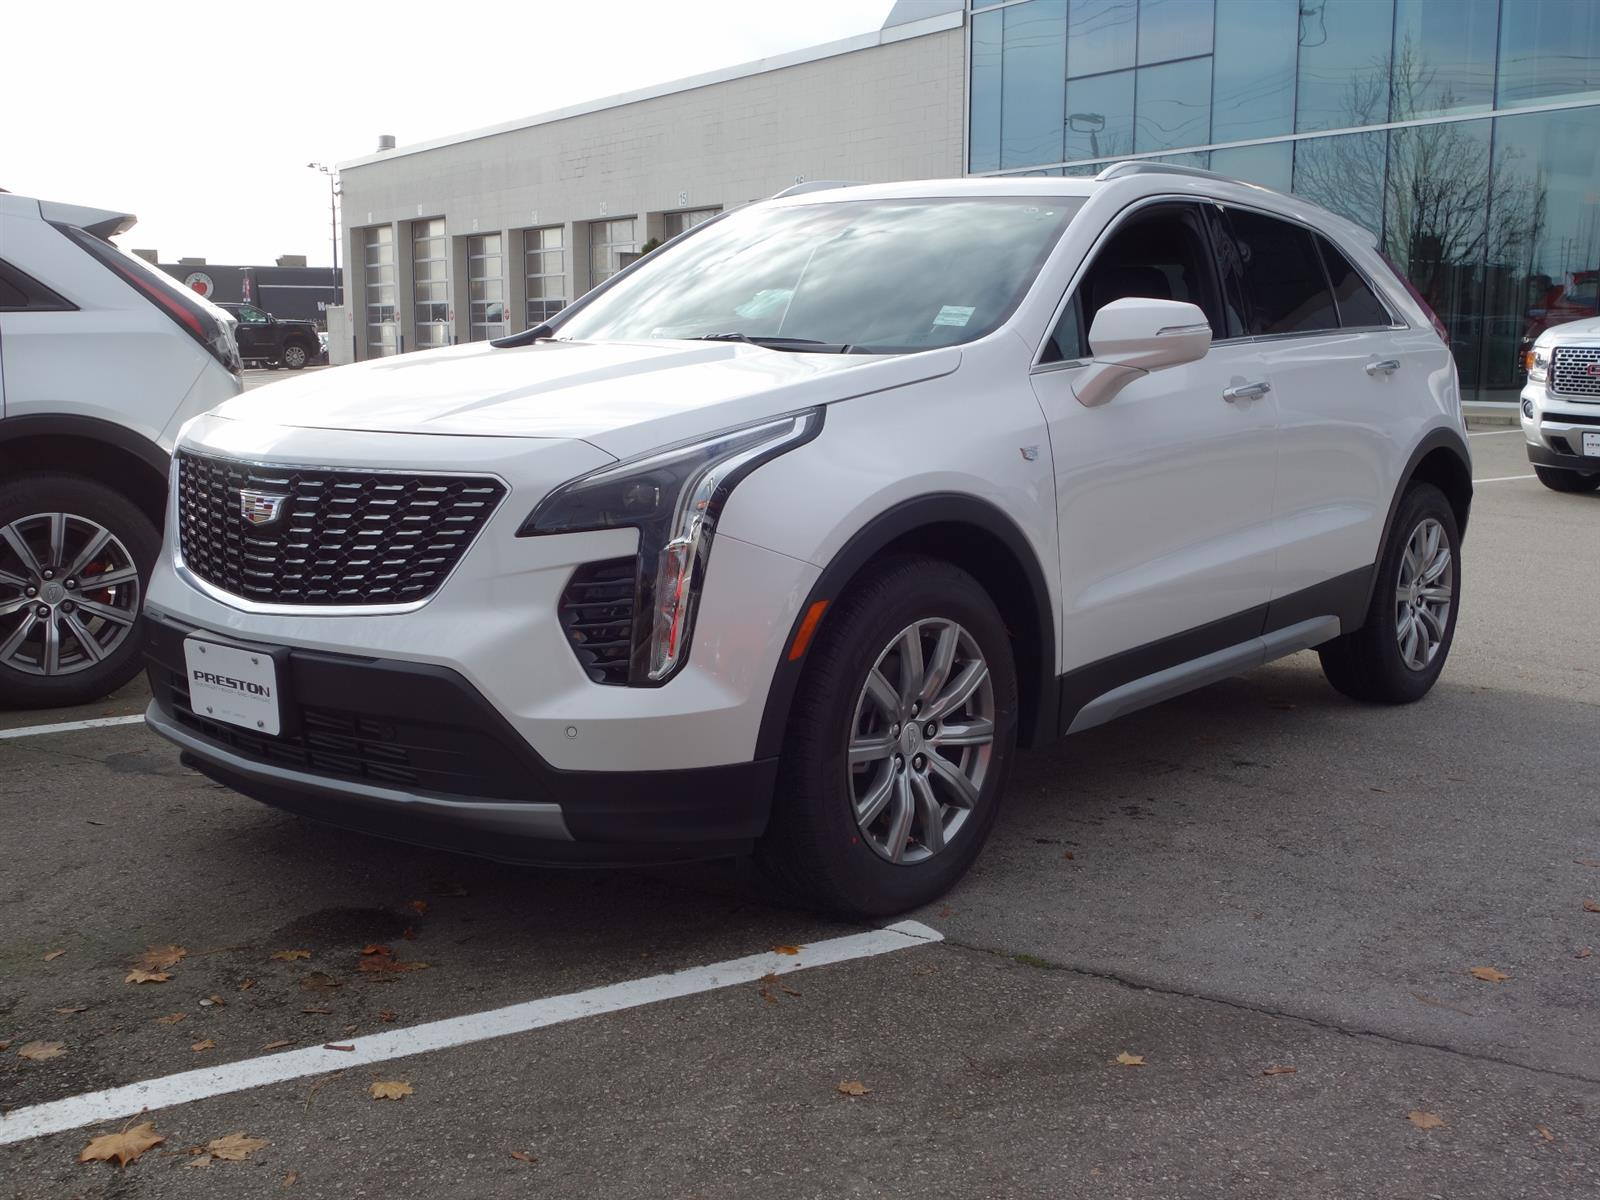 2021 cadillac xt4 for sale in langley, bc (1705283346